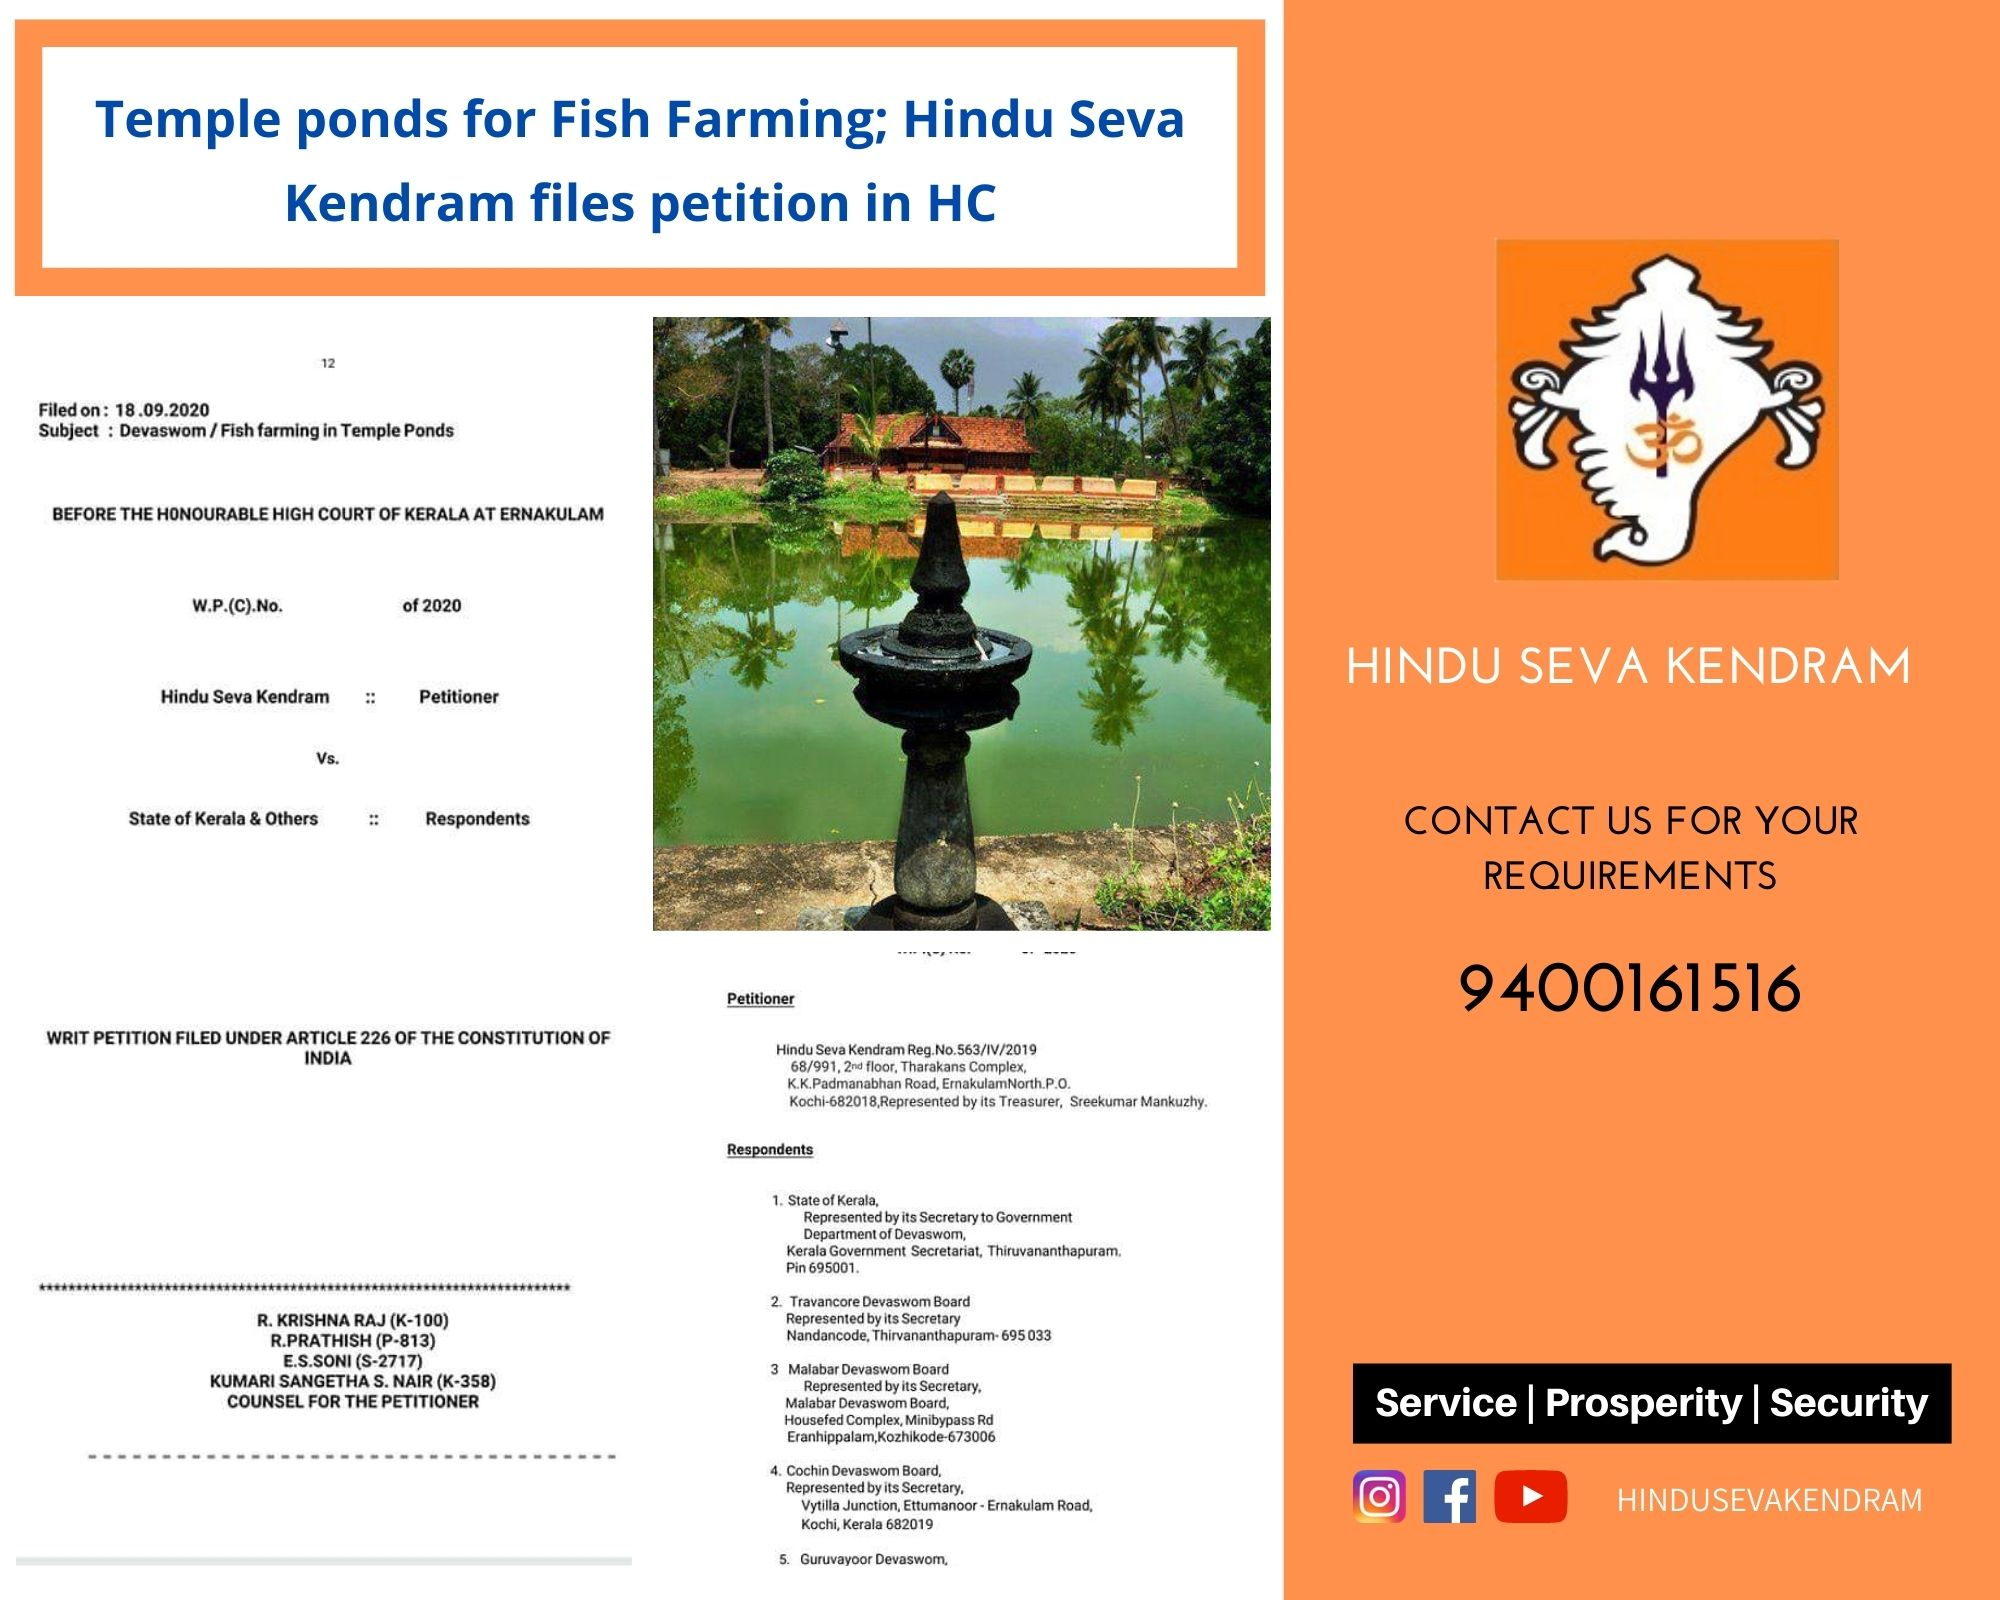 Temple ponds for Fish Farming; Hindu Seva Kendram files petition in HC